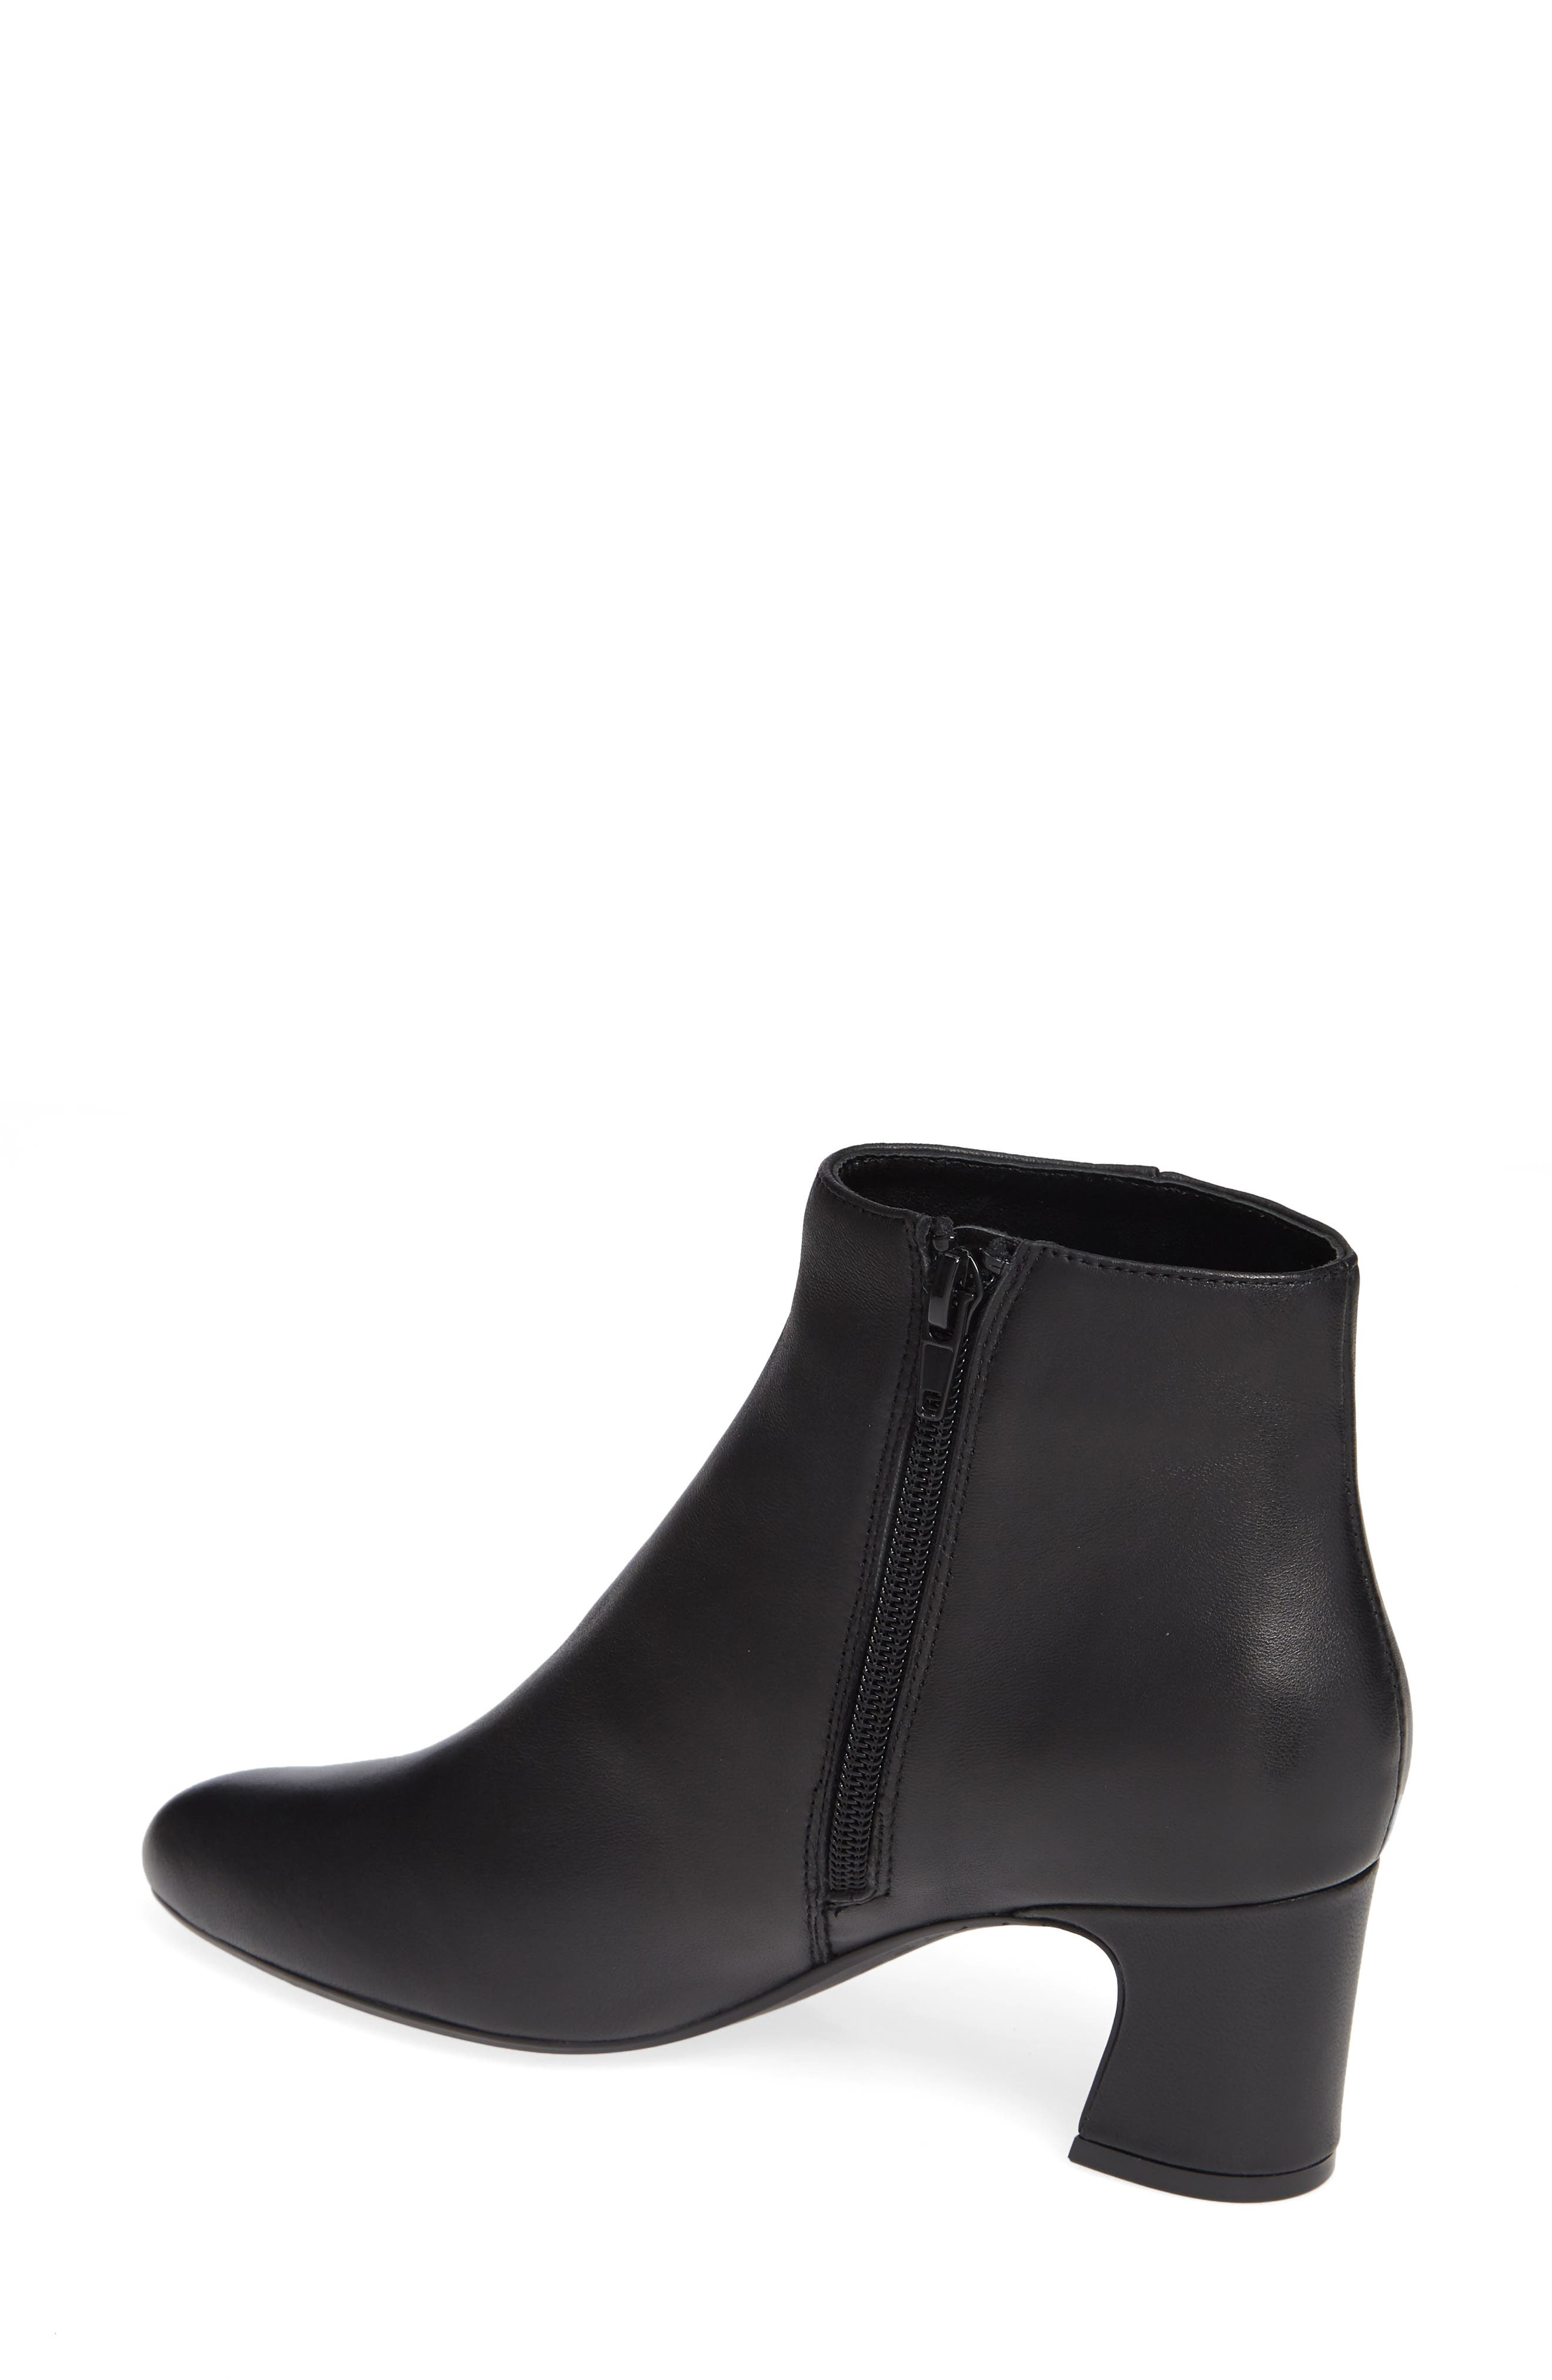 Dany Bootie,                             Alternate thumbnail 2, color,                             BLACK LEATHER